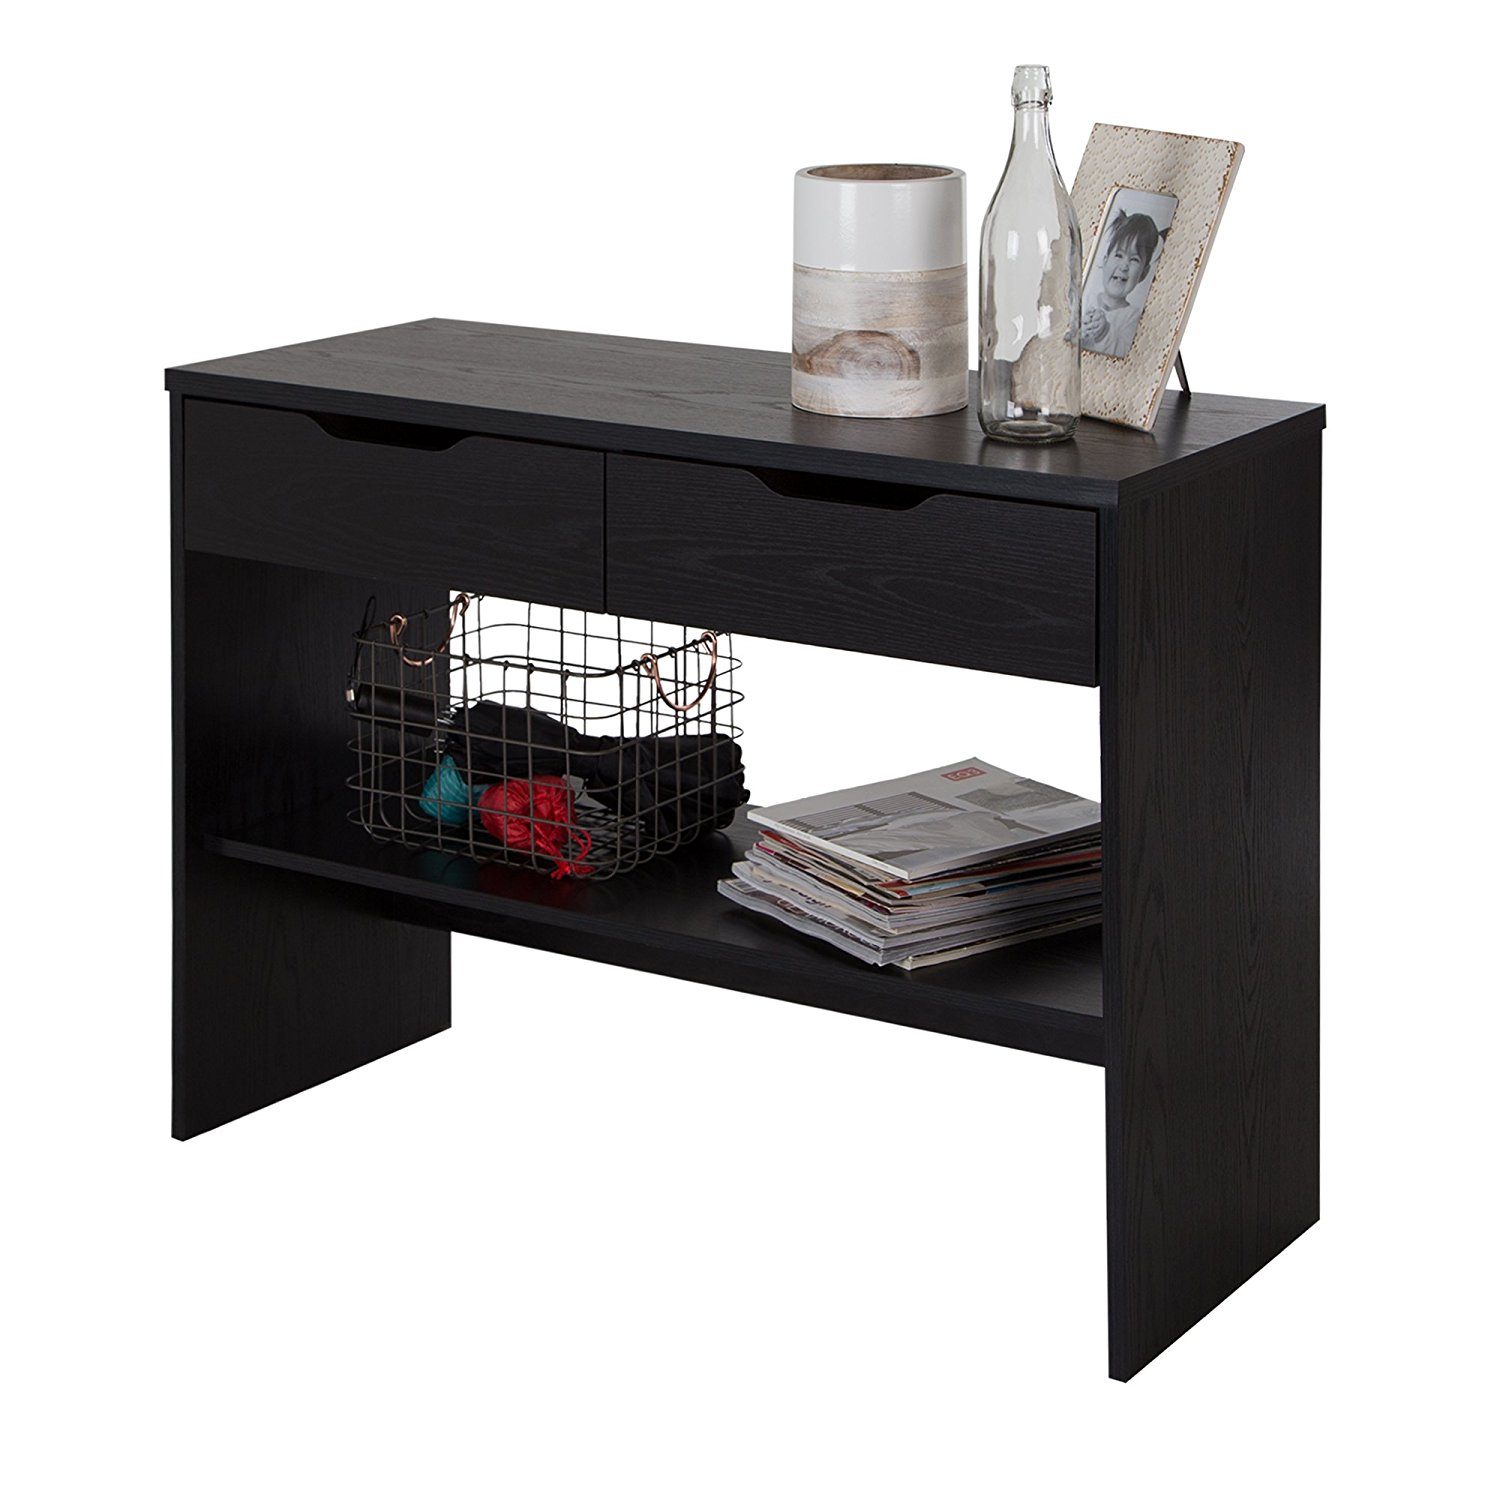 South Shore Flexible Console Table with 2 Drawers, Black Oak